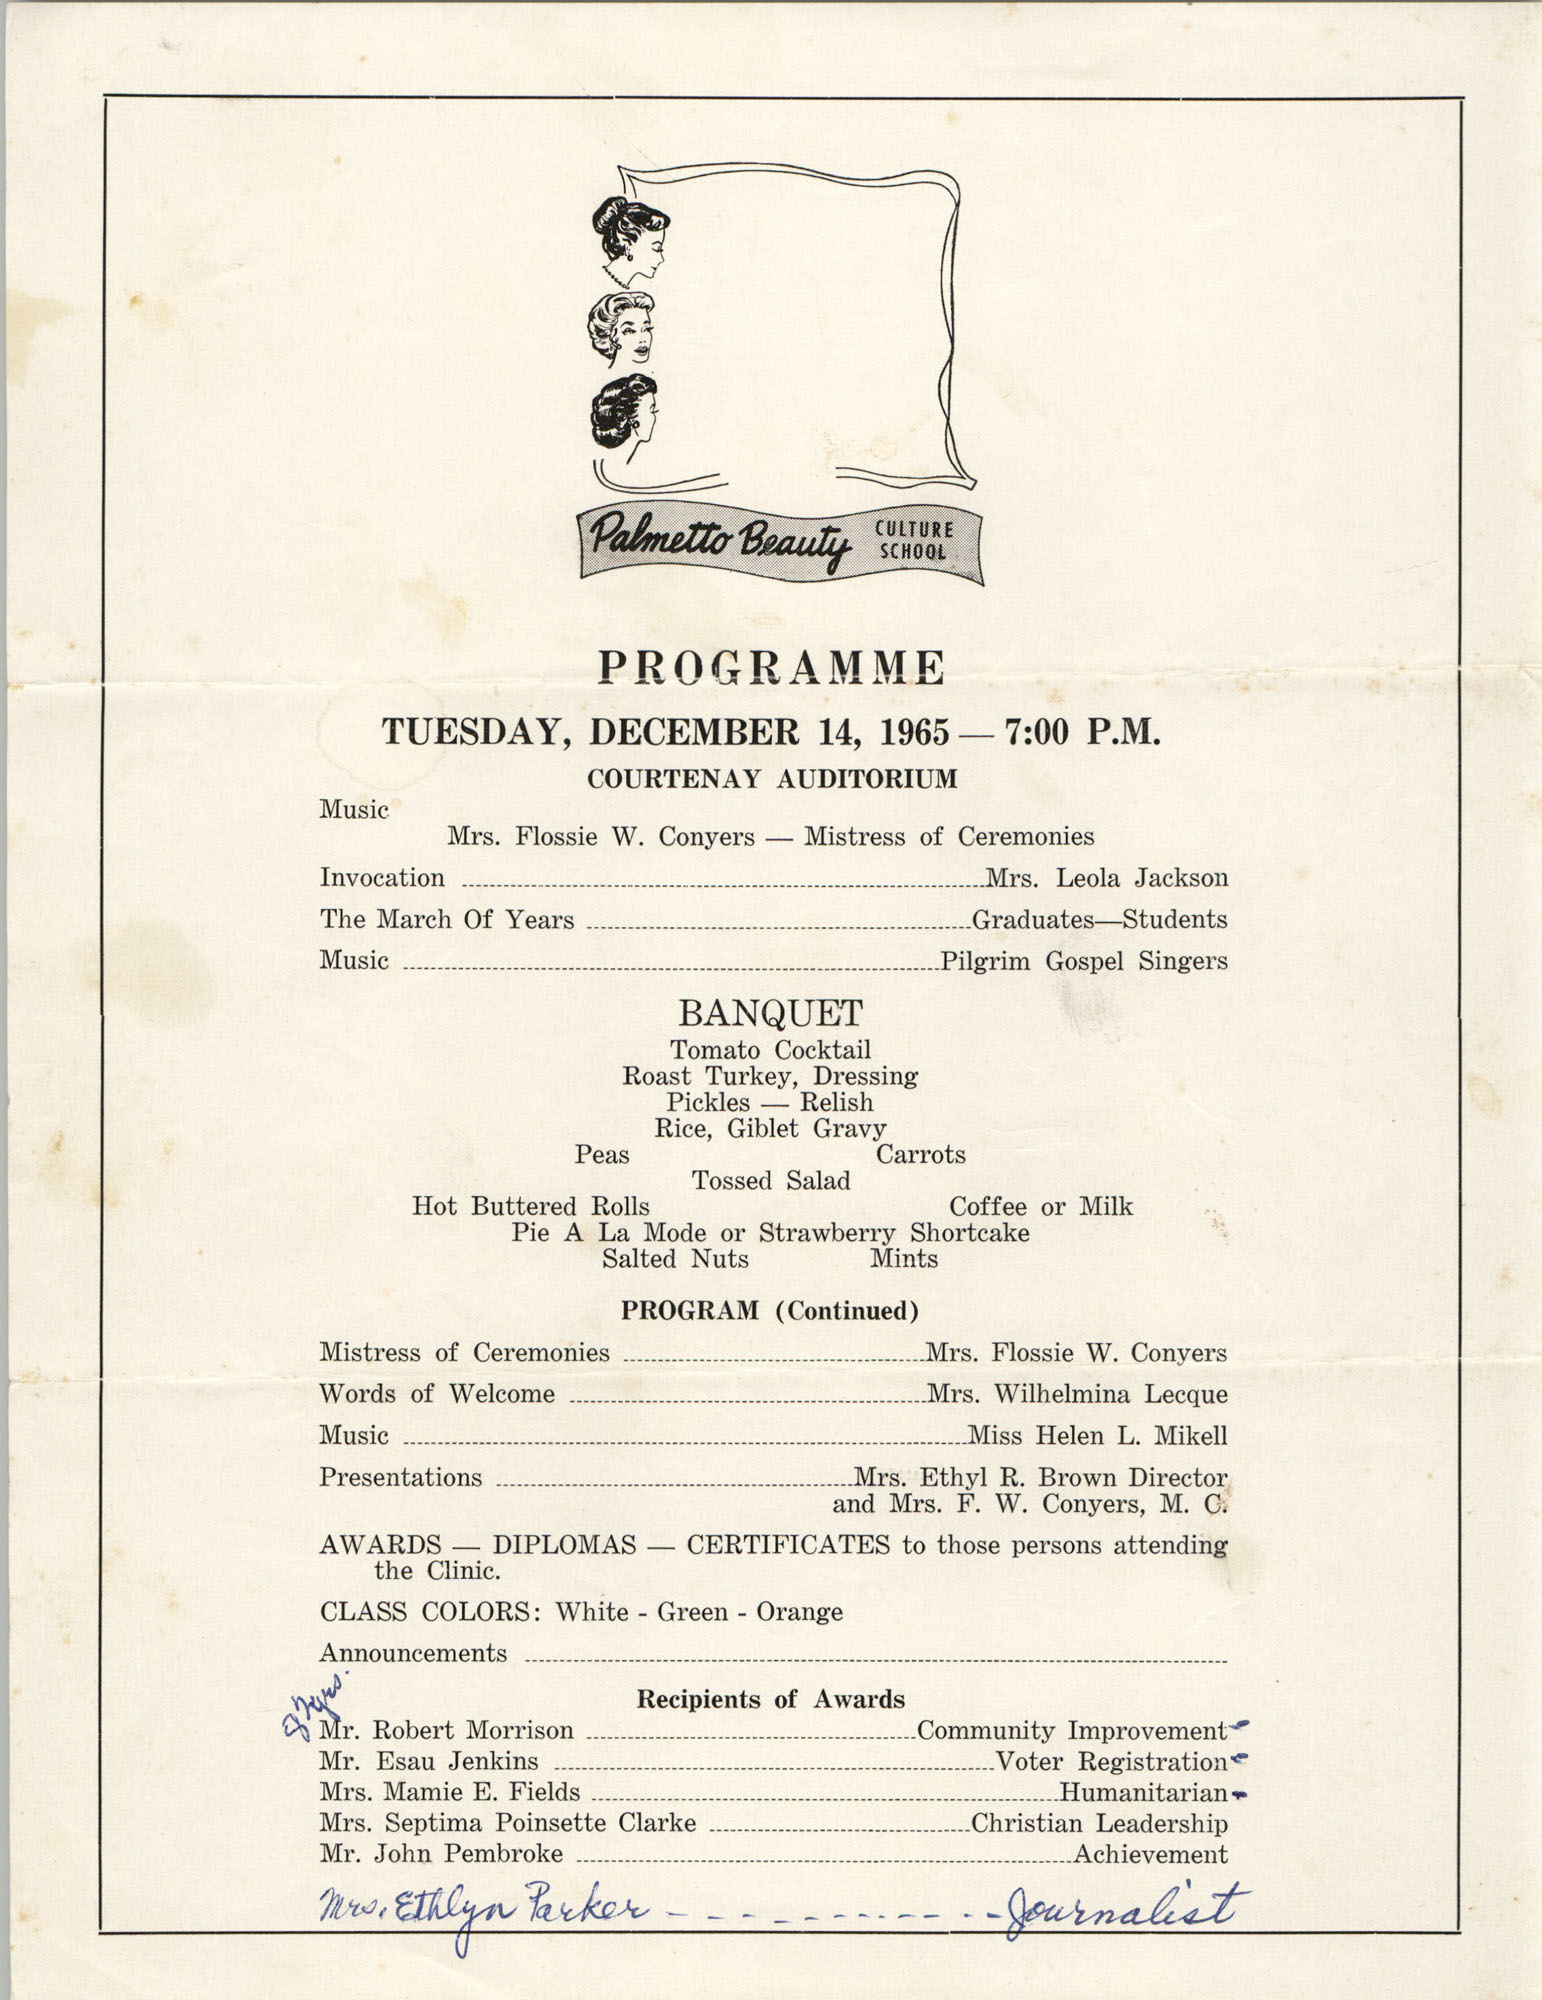 Program for Septima P. Clark Award Ceremony, December 14, 1965